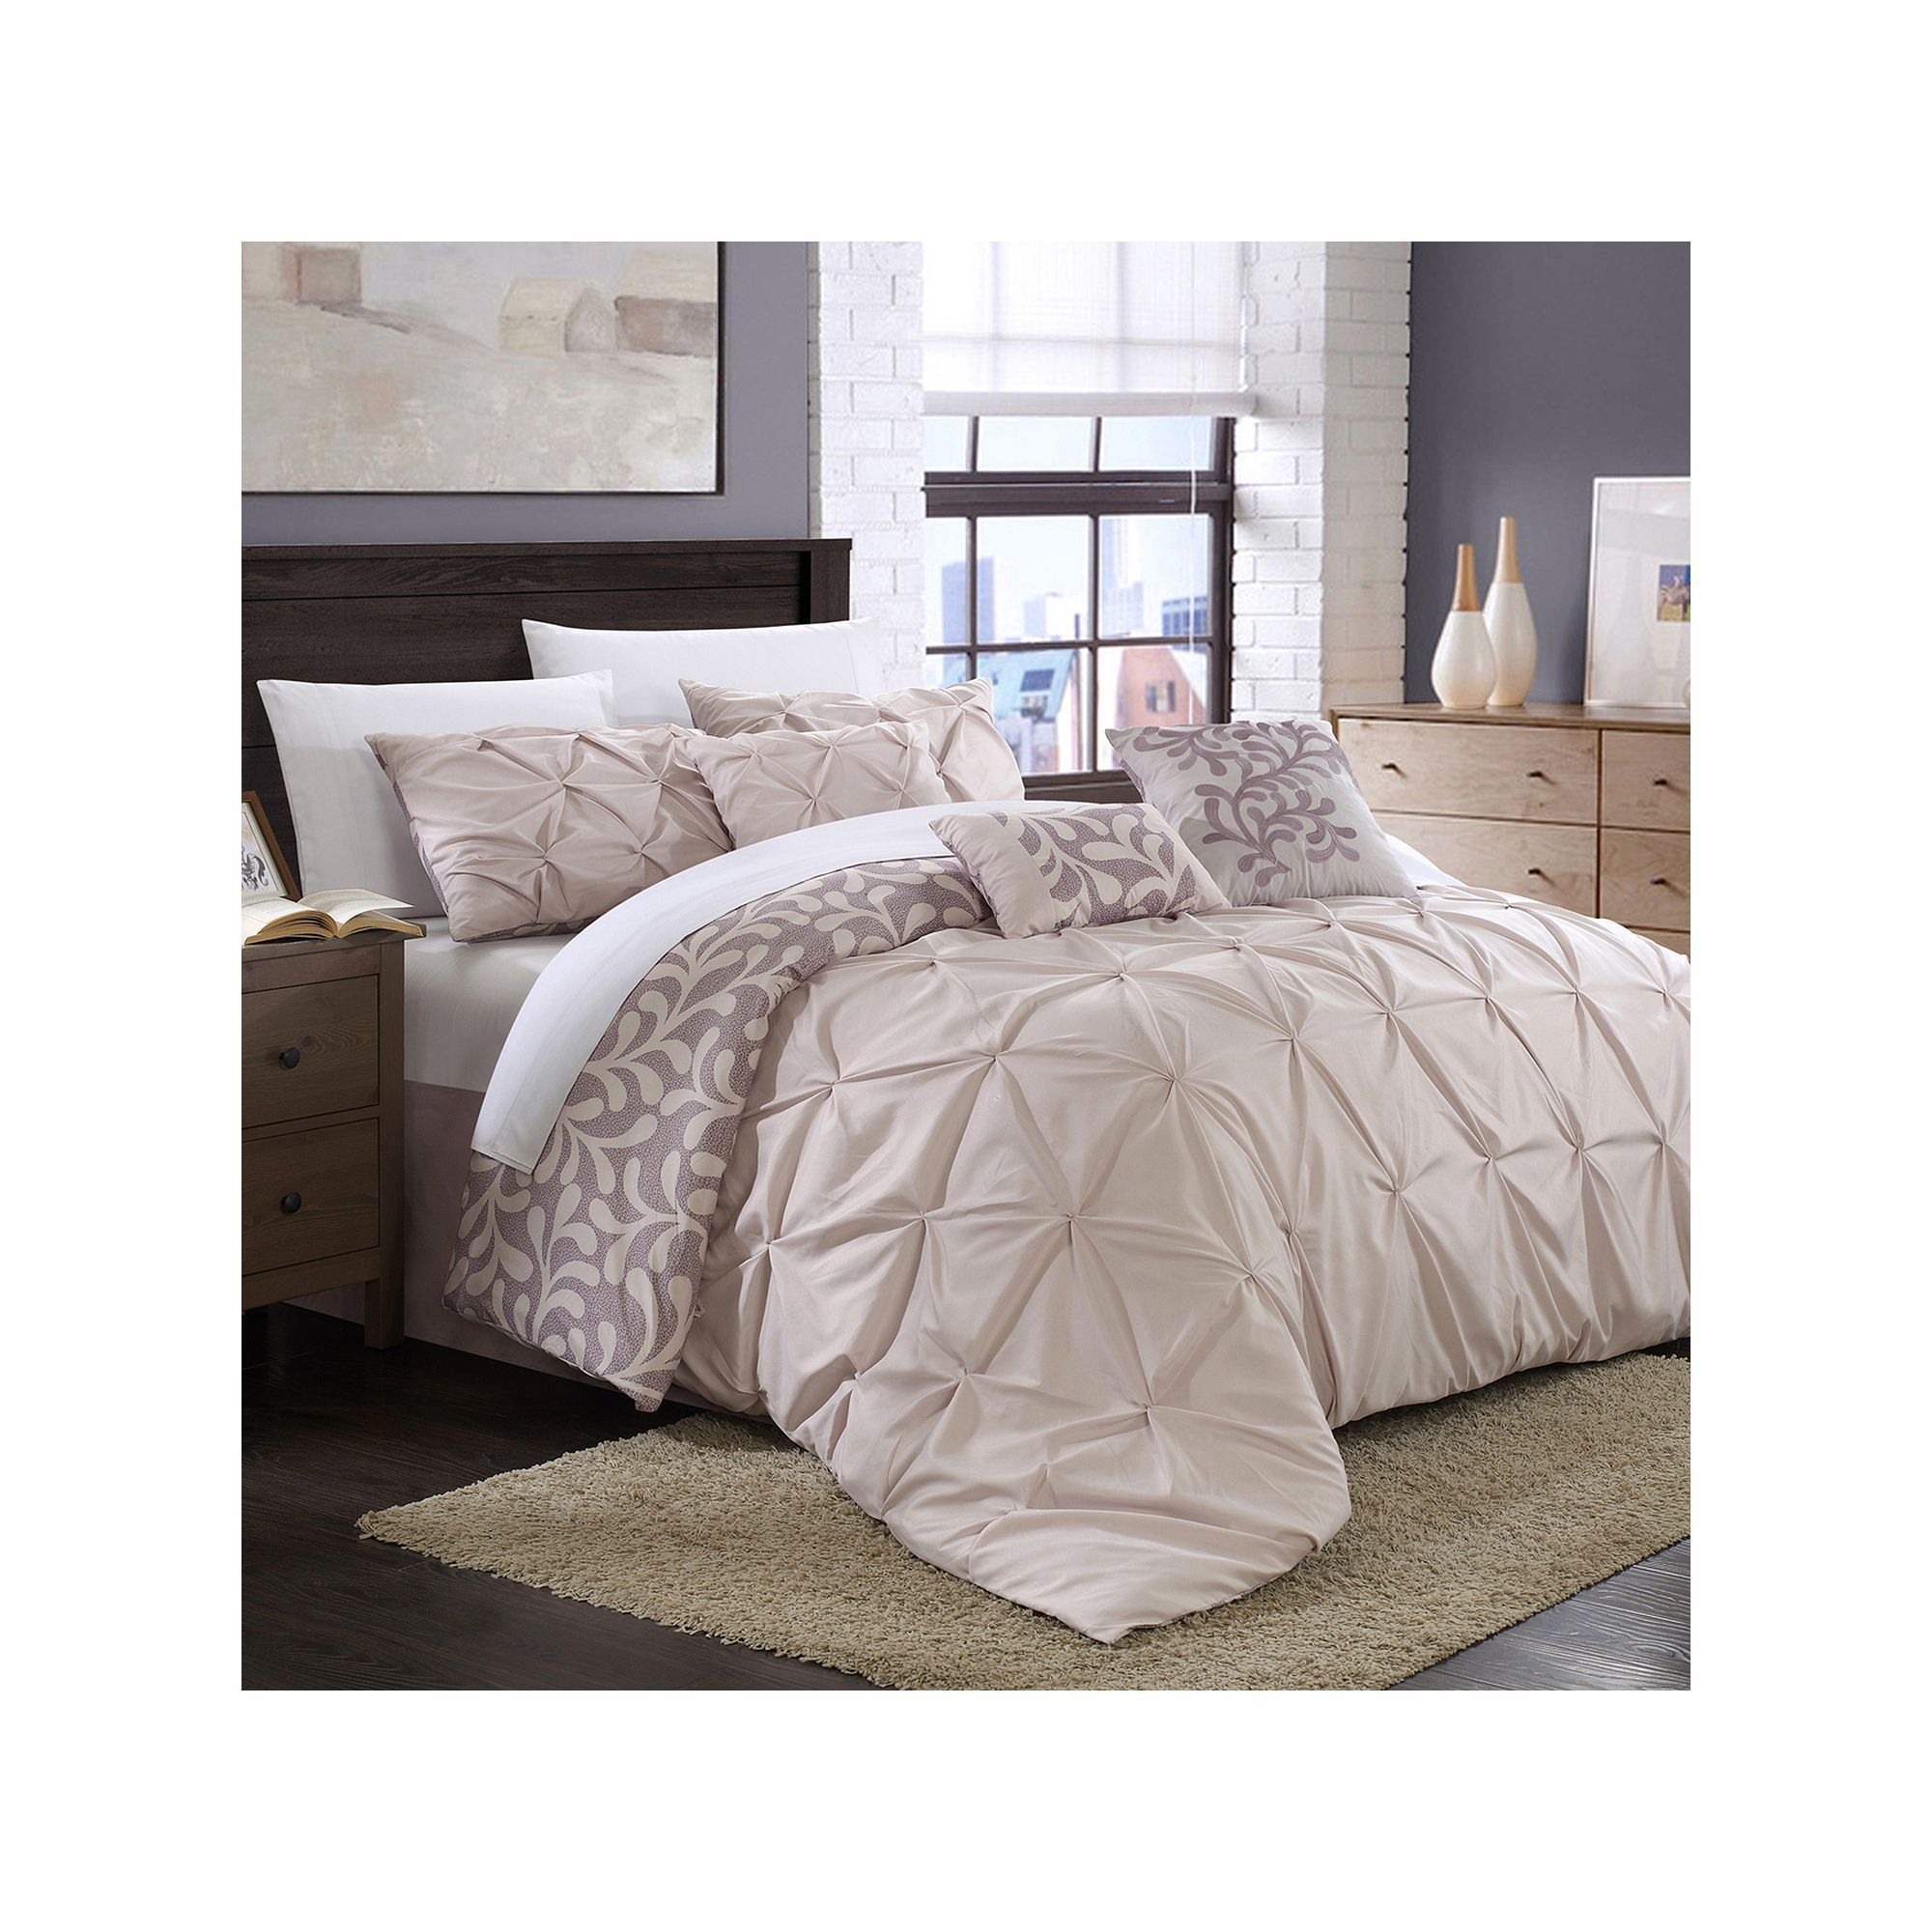 lily overstock intelligent com the pin on coral comforter shopping deals linen set design best